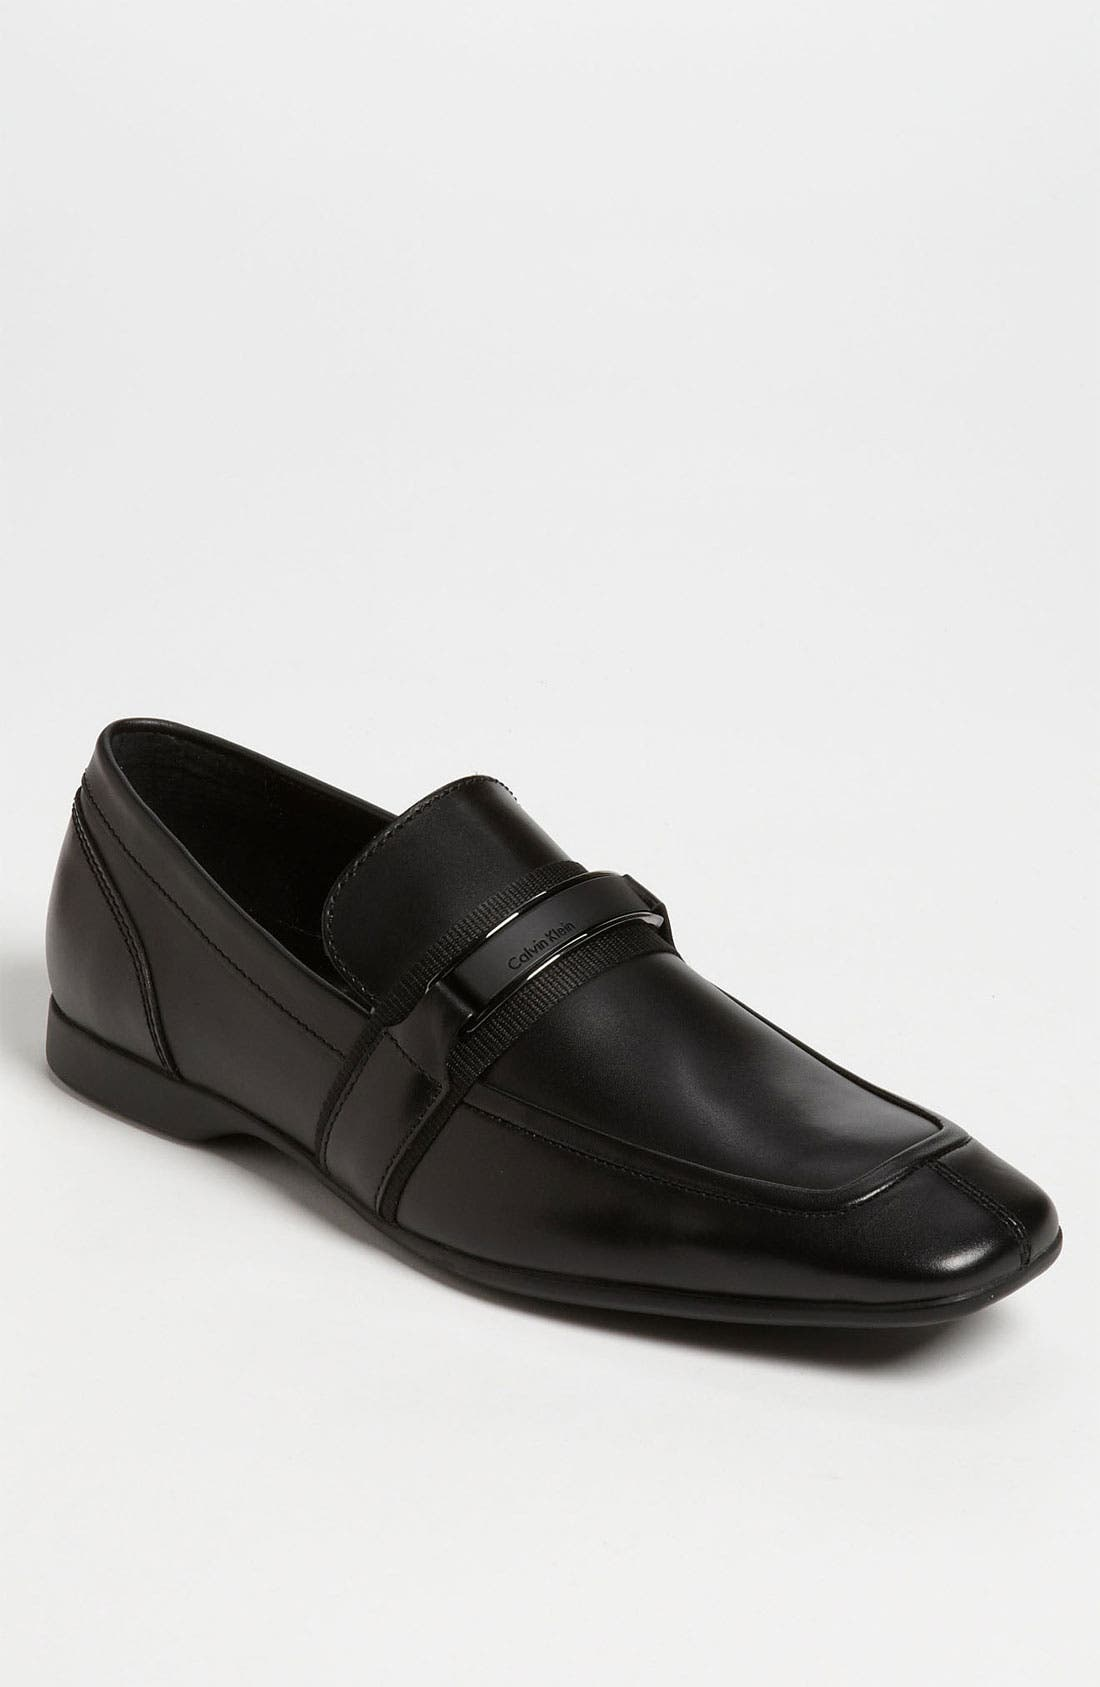 Alternate Image 1 Selected - Calvin Klein 'Shane' Loafer